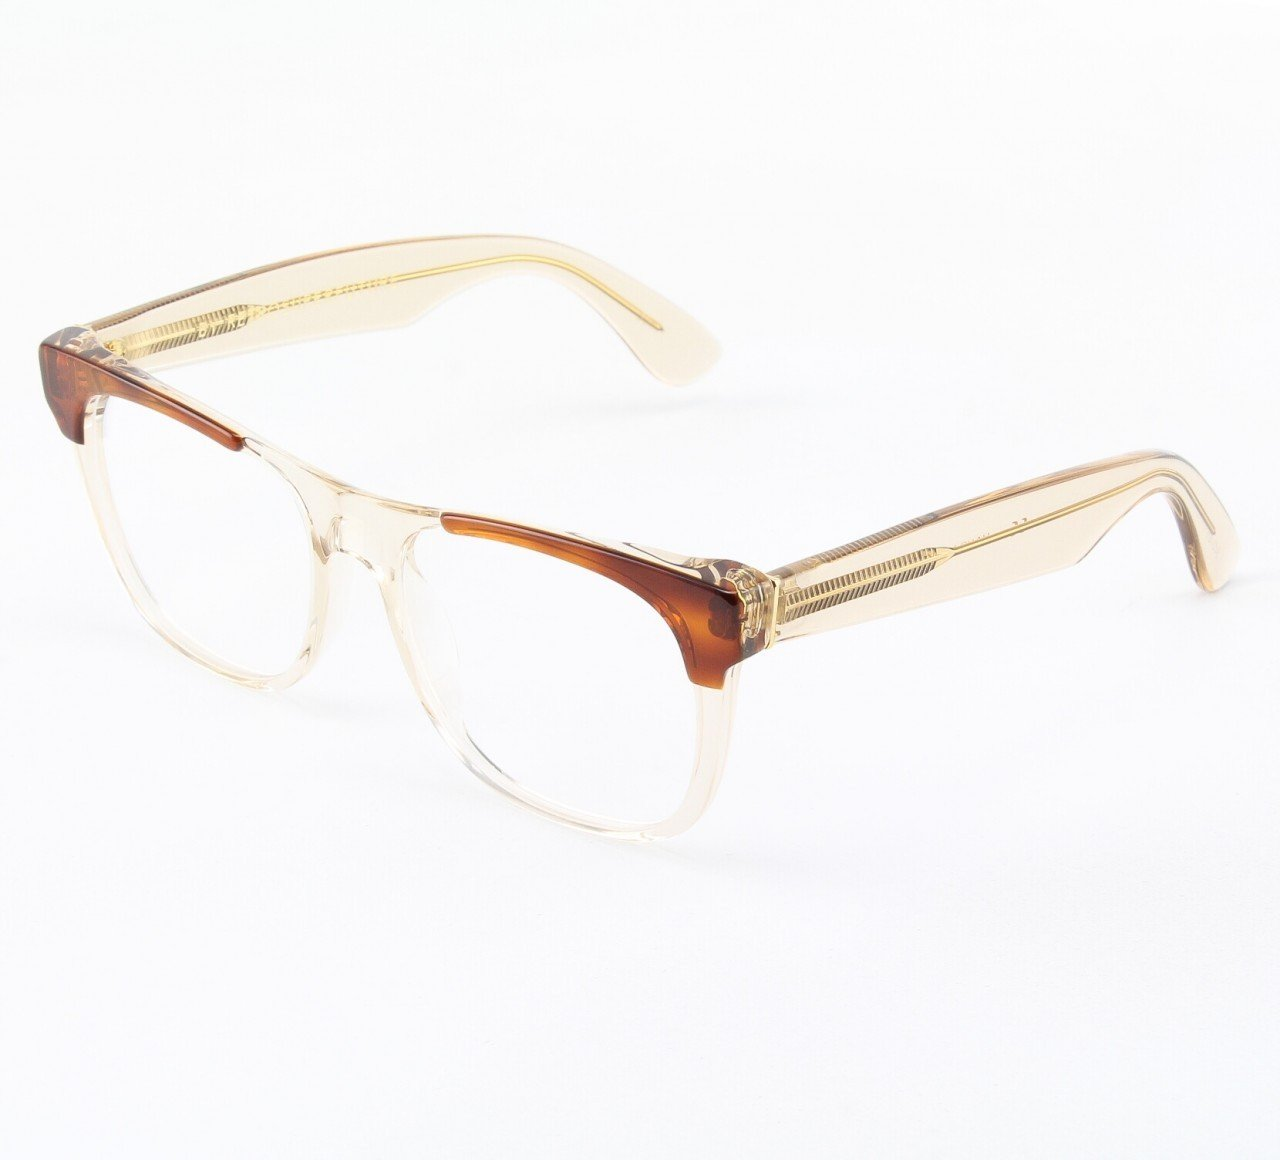 Super Classic 960/0T Eyeglasses Brown with Clear Zeiss Lenses by RETROSUPERFUTURE